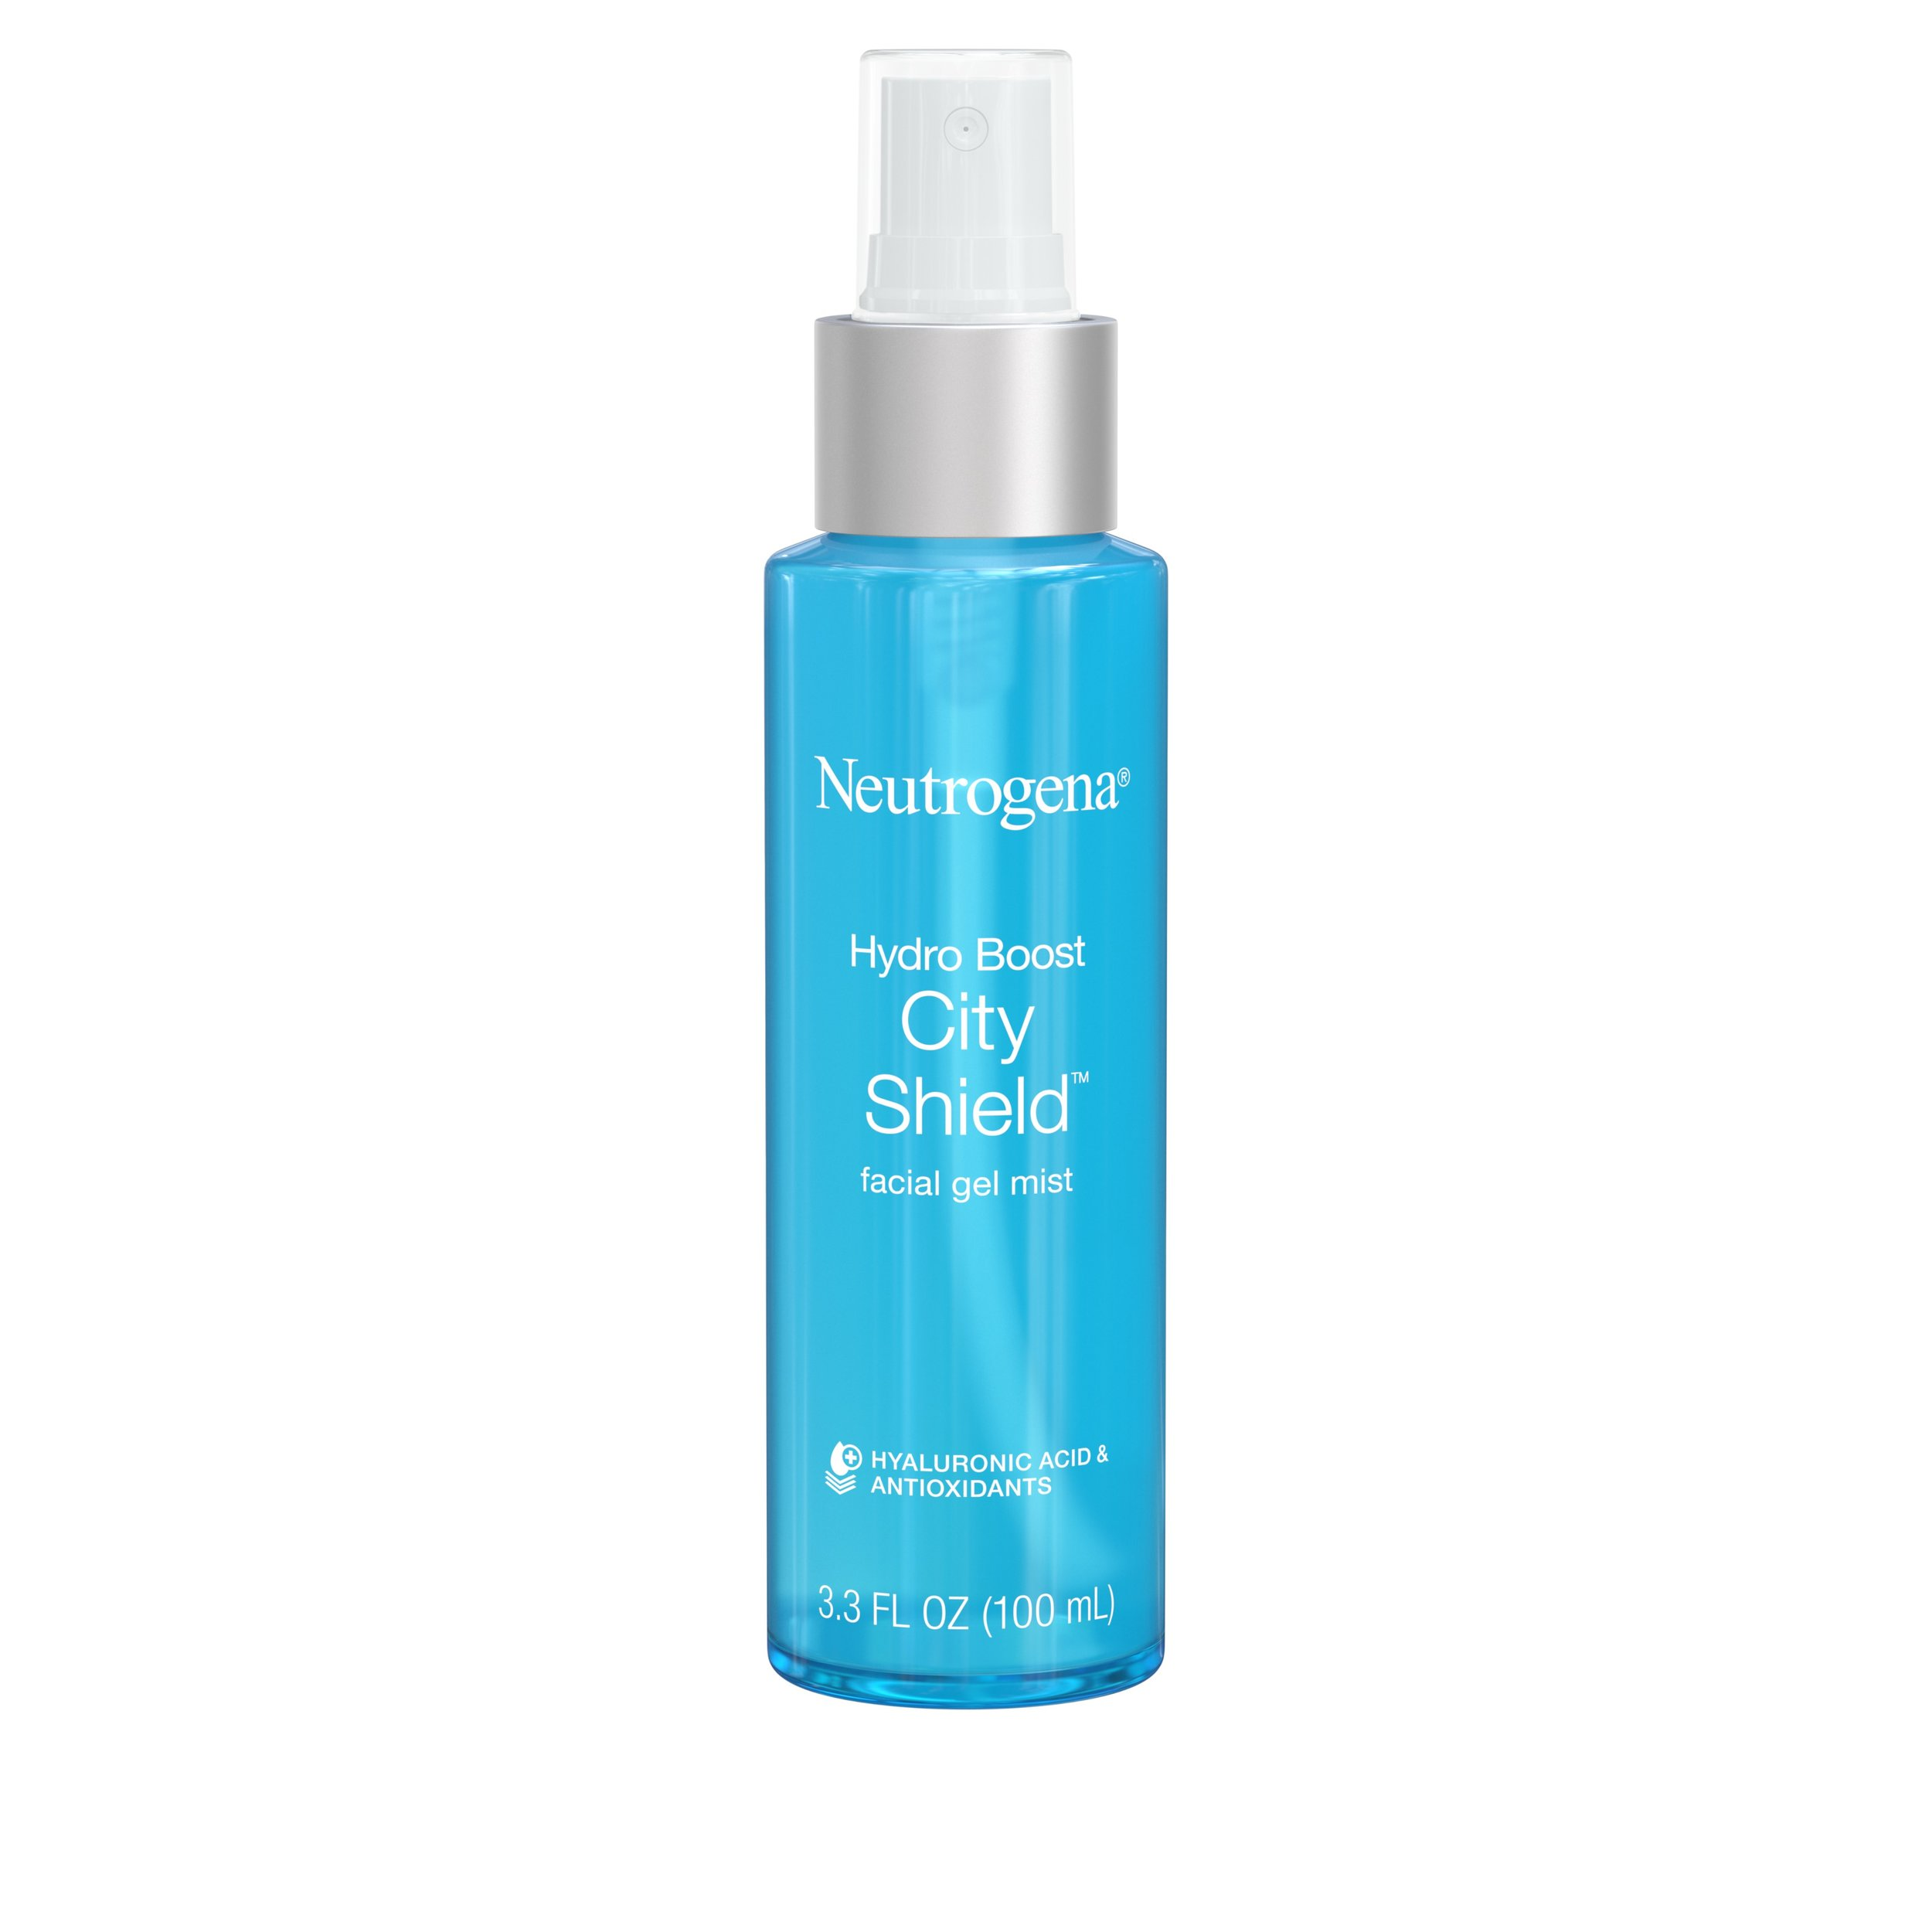 NTG HBCS Facial Gel Mist.jpeg